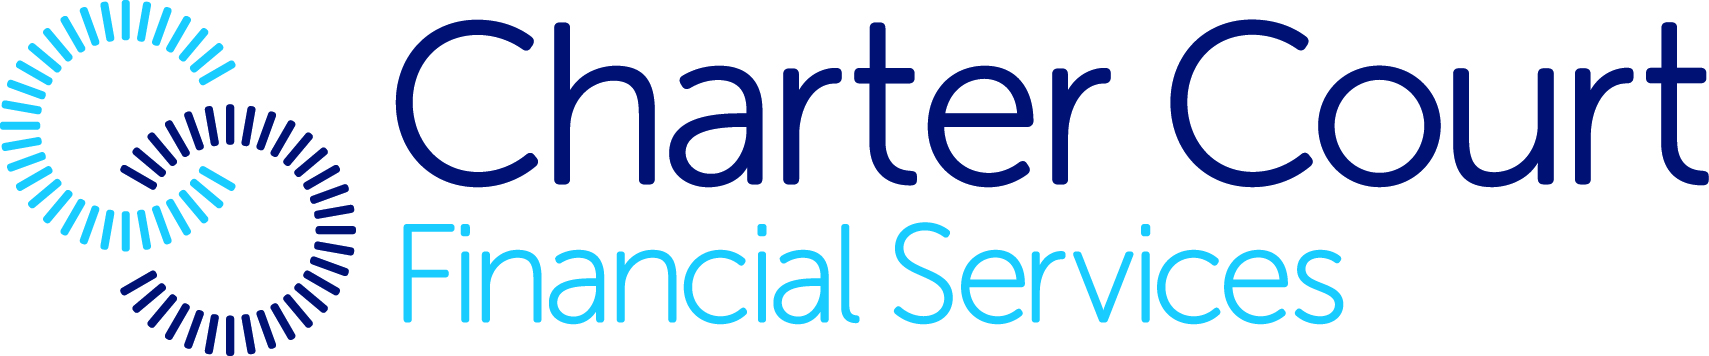 Charter Court Financial Services